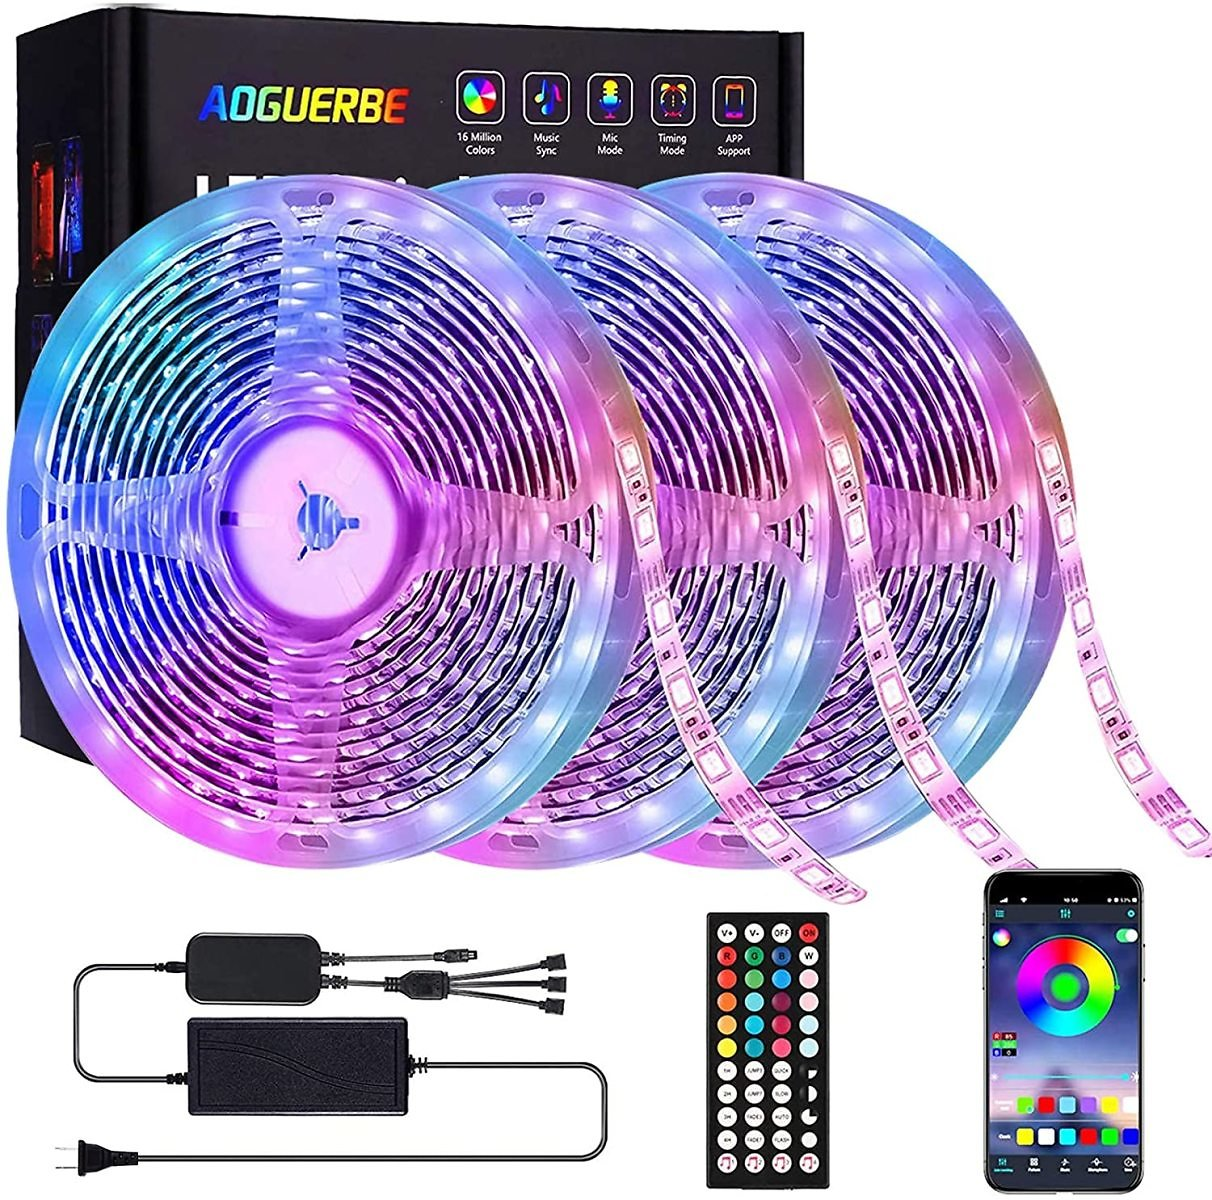 34% Discount - Aoguerbe Led Strip Lights 50 Feet Music Sync Color Changing Led Light Strips